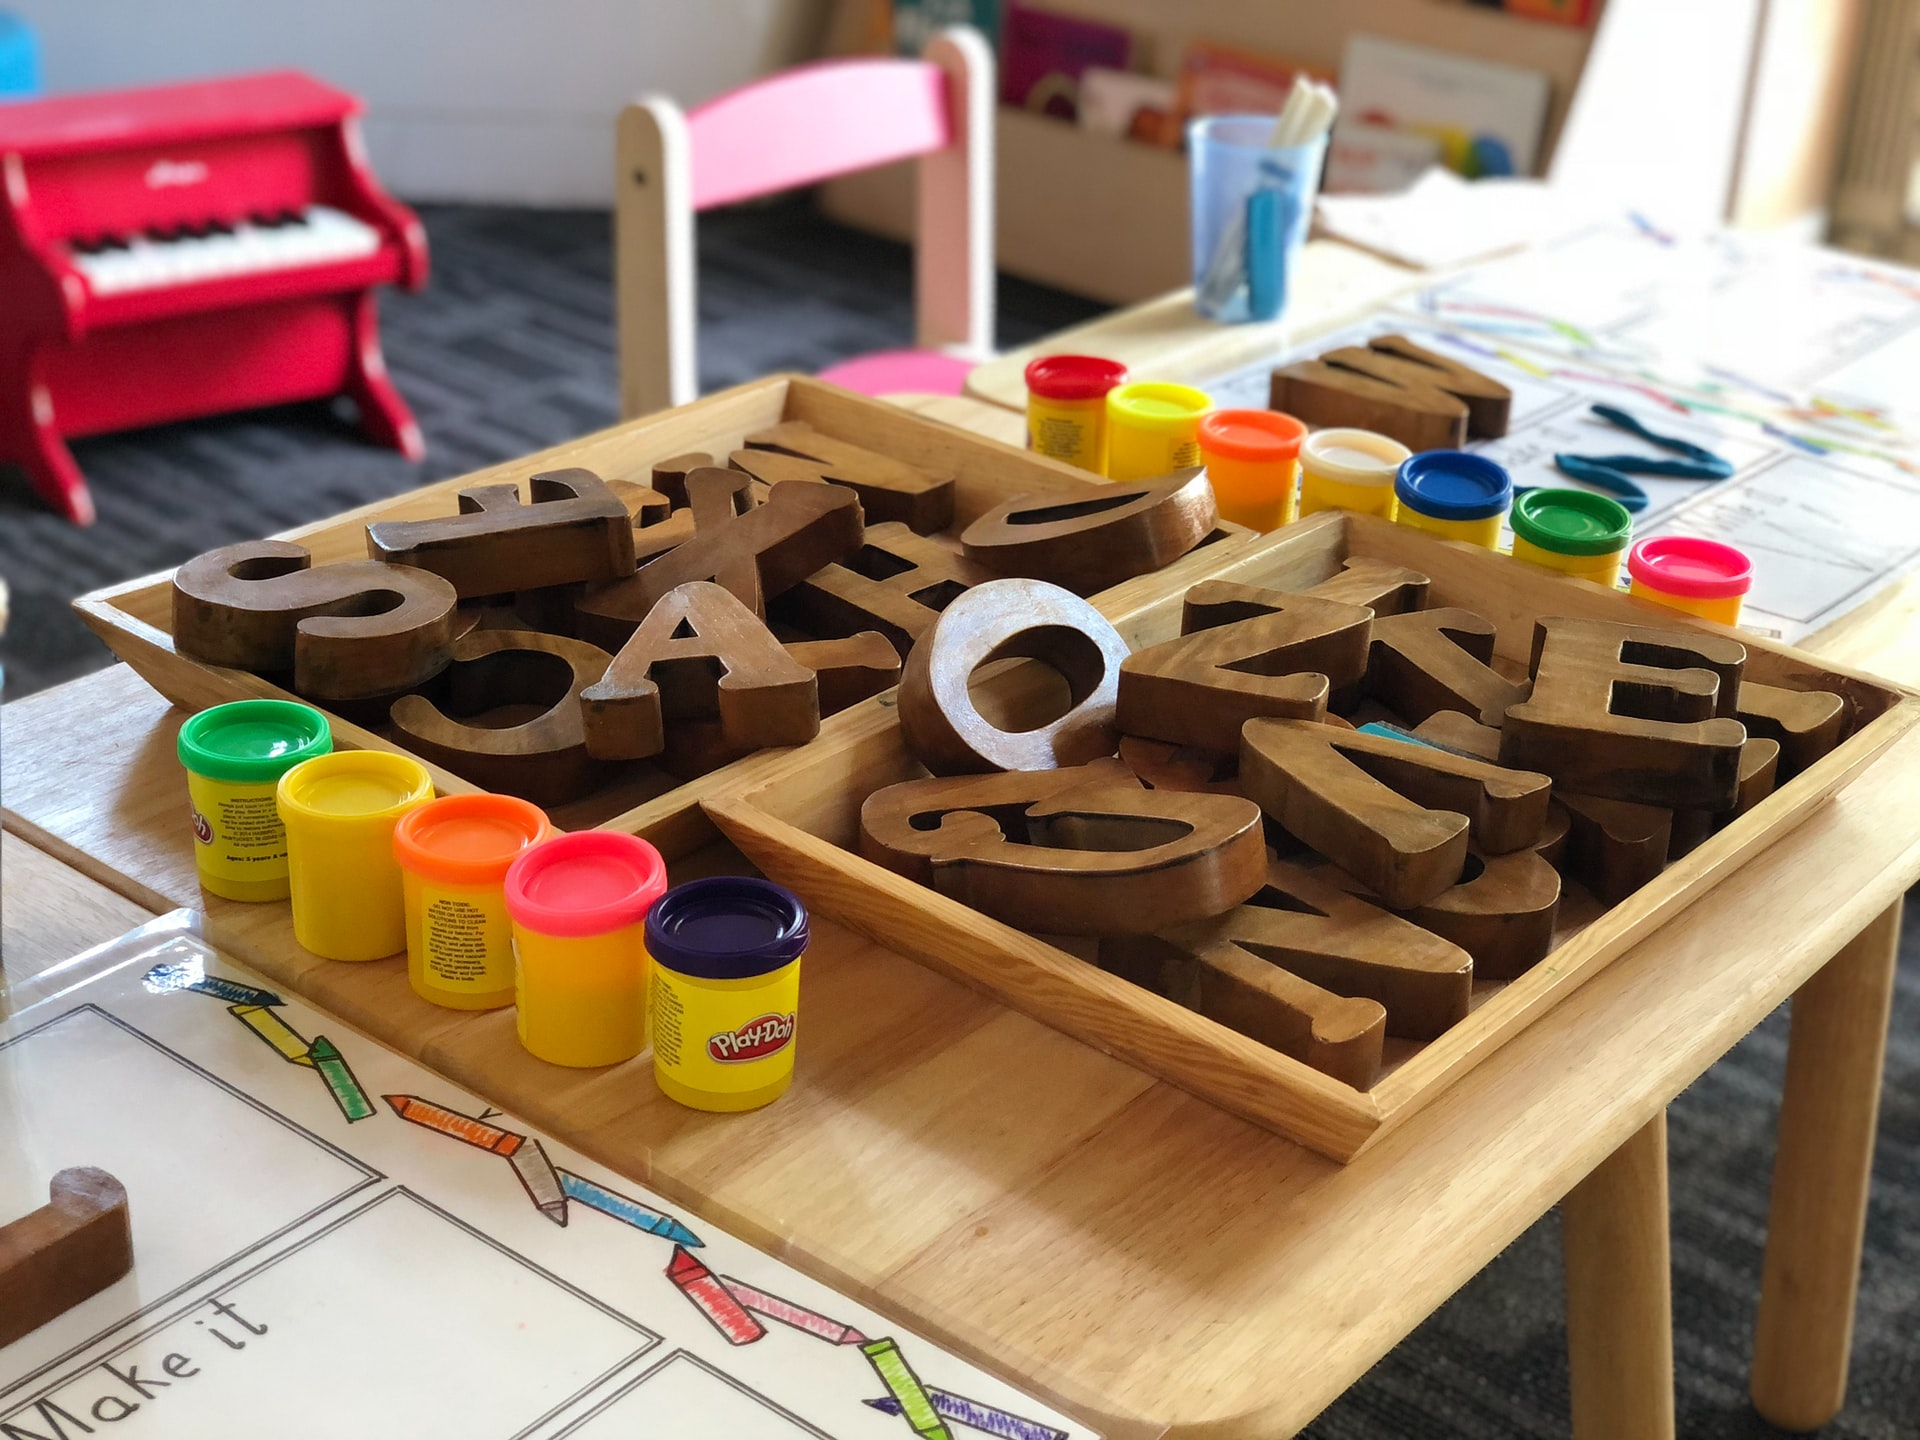 Wooden puzzle pieces and play-doh